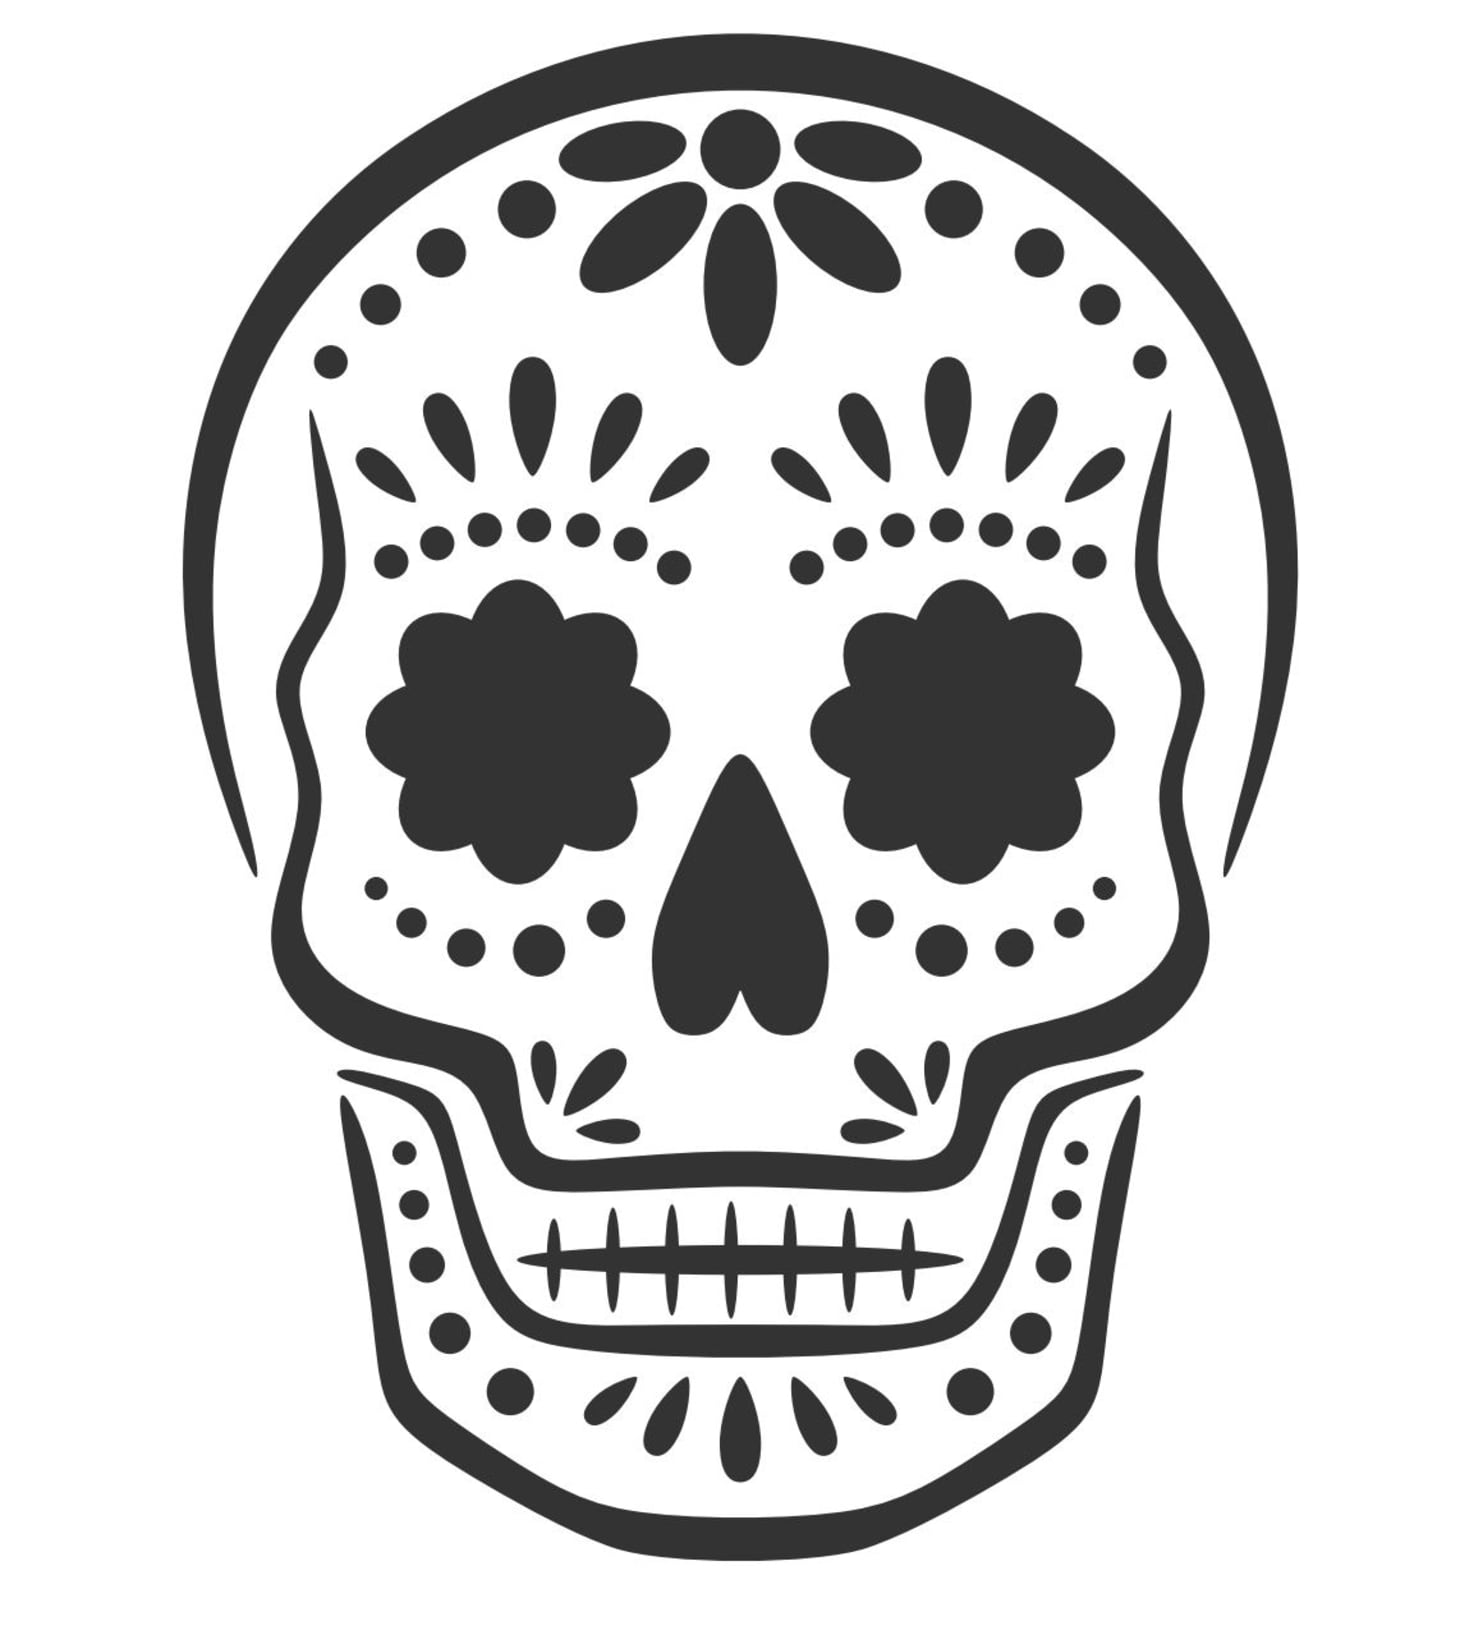 sugar skull template sugar skull drawing template free download on clipartmag sugar skull template